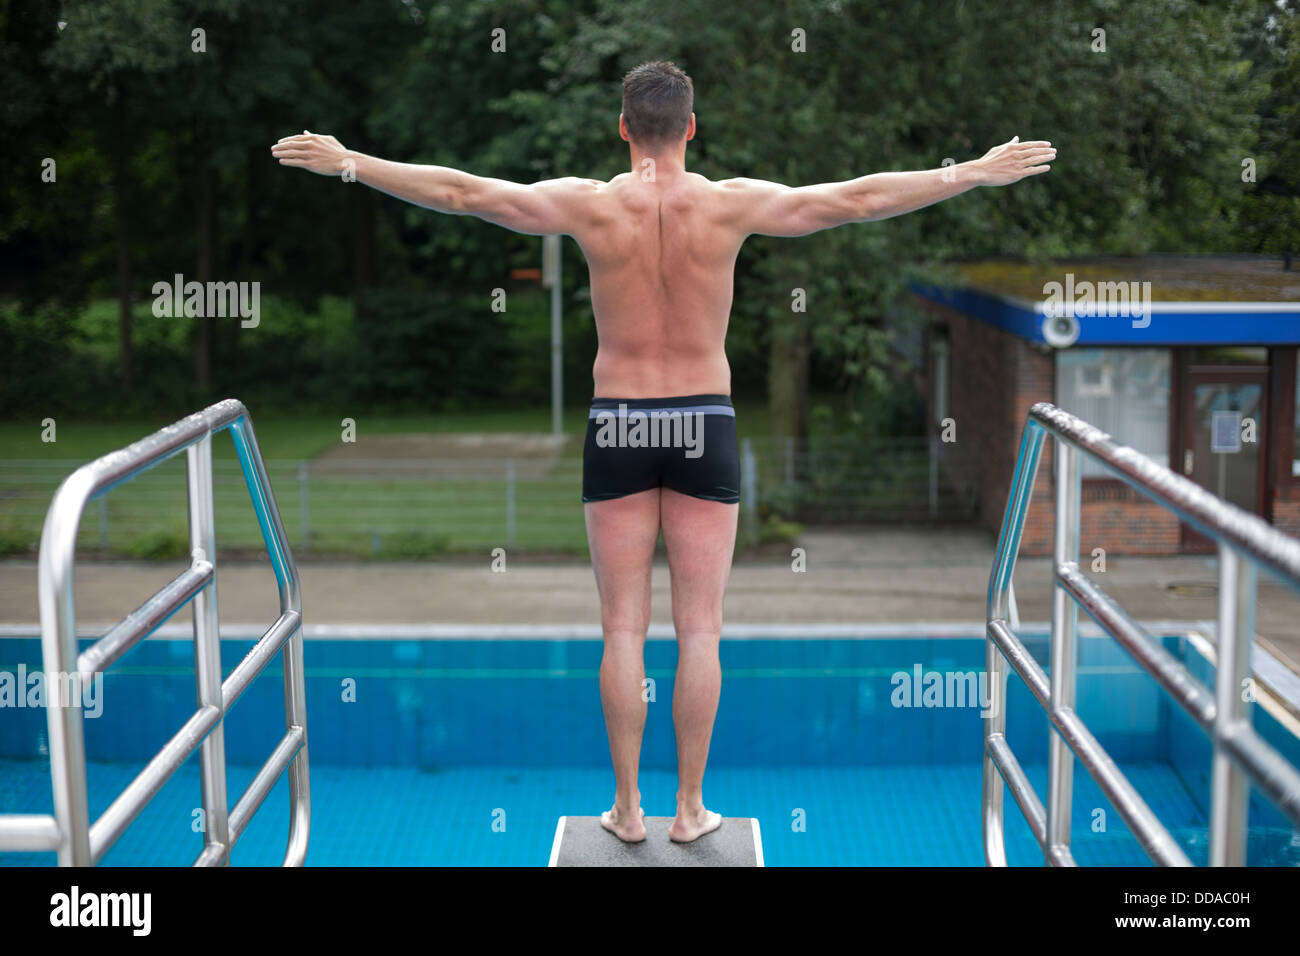 Man standing on diving board at public swimming pool ready to jump ...